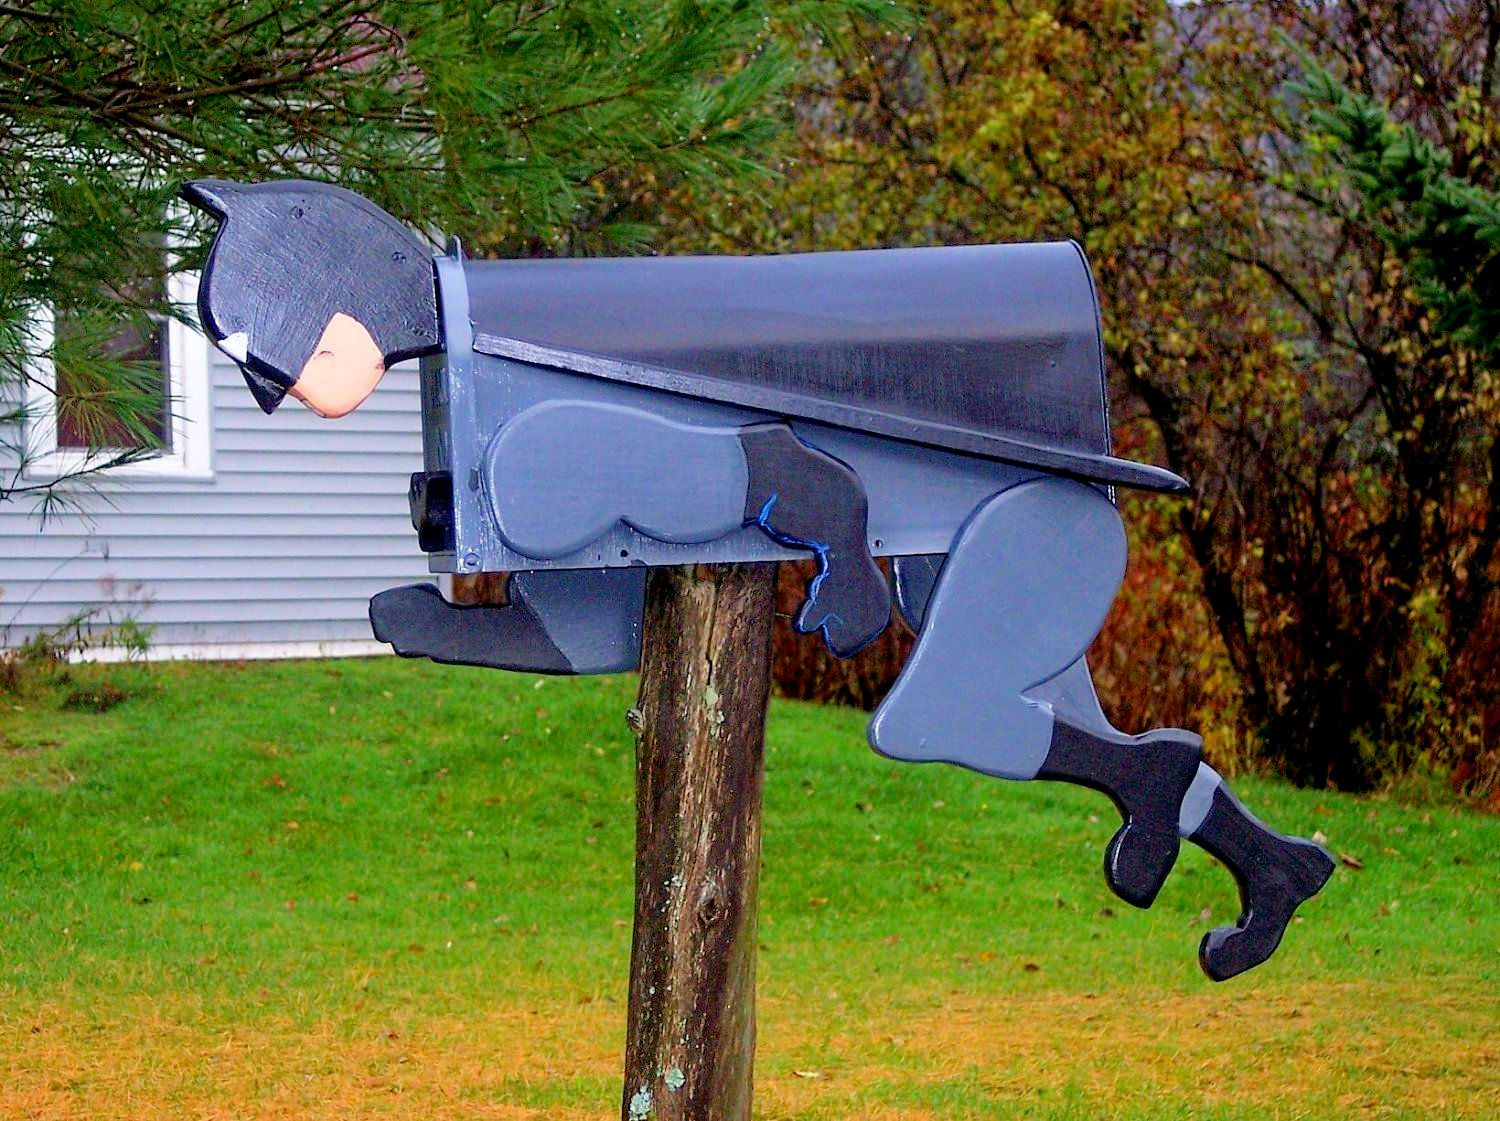 Batman Mailbox Google image from https://www.pinterest.ca/pin/518125132104640966/